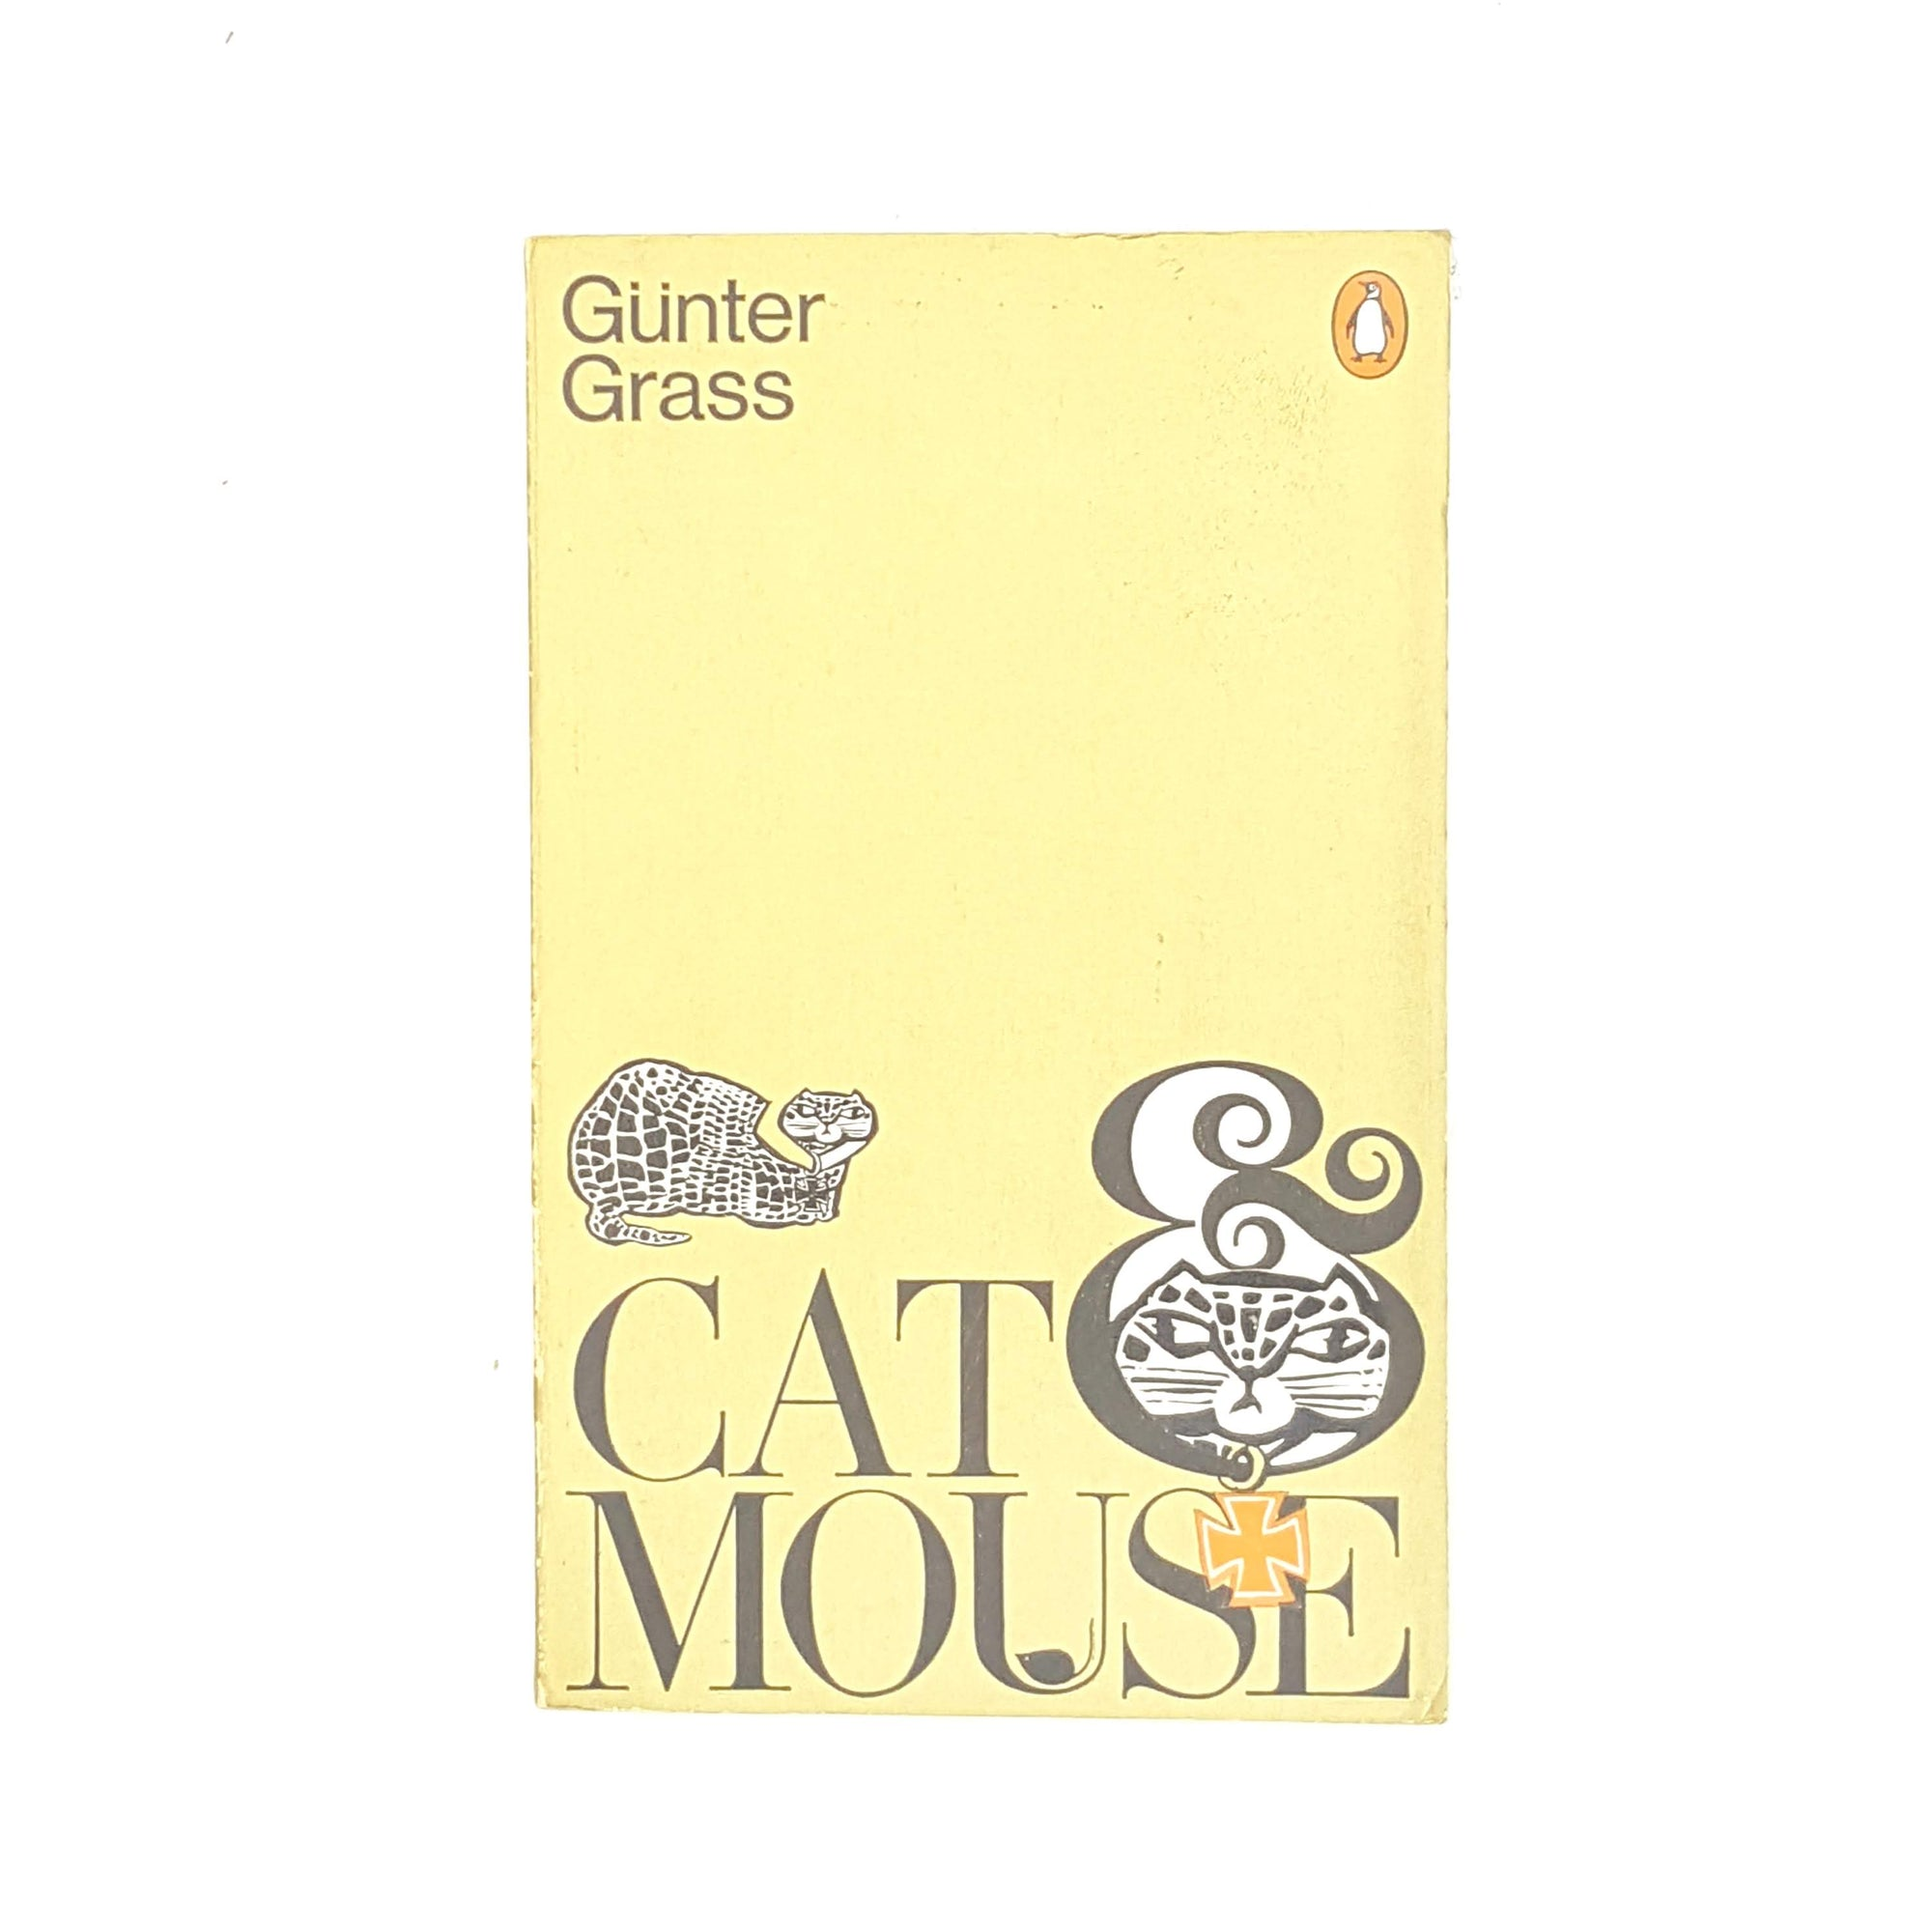 Cat & Mouse by Günter Grass 1971